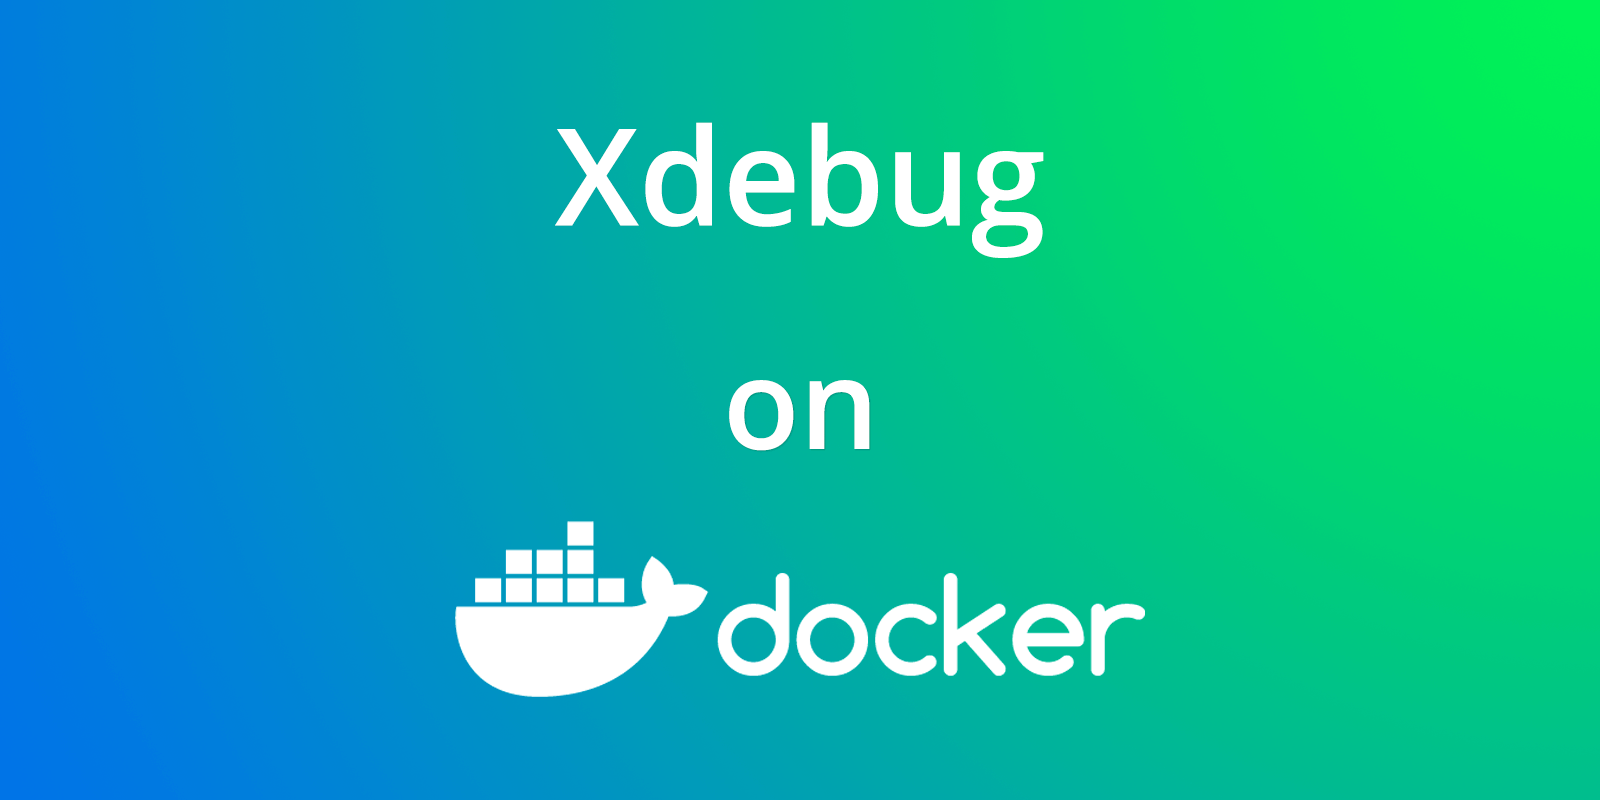 xdebug on docker